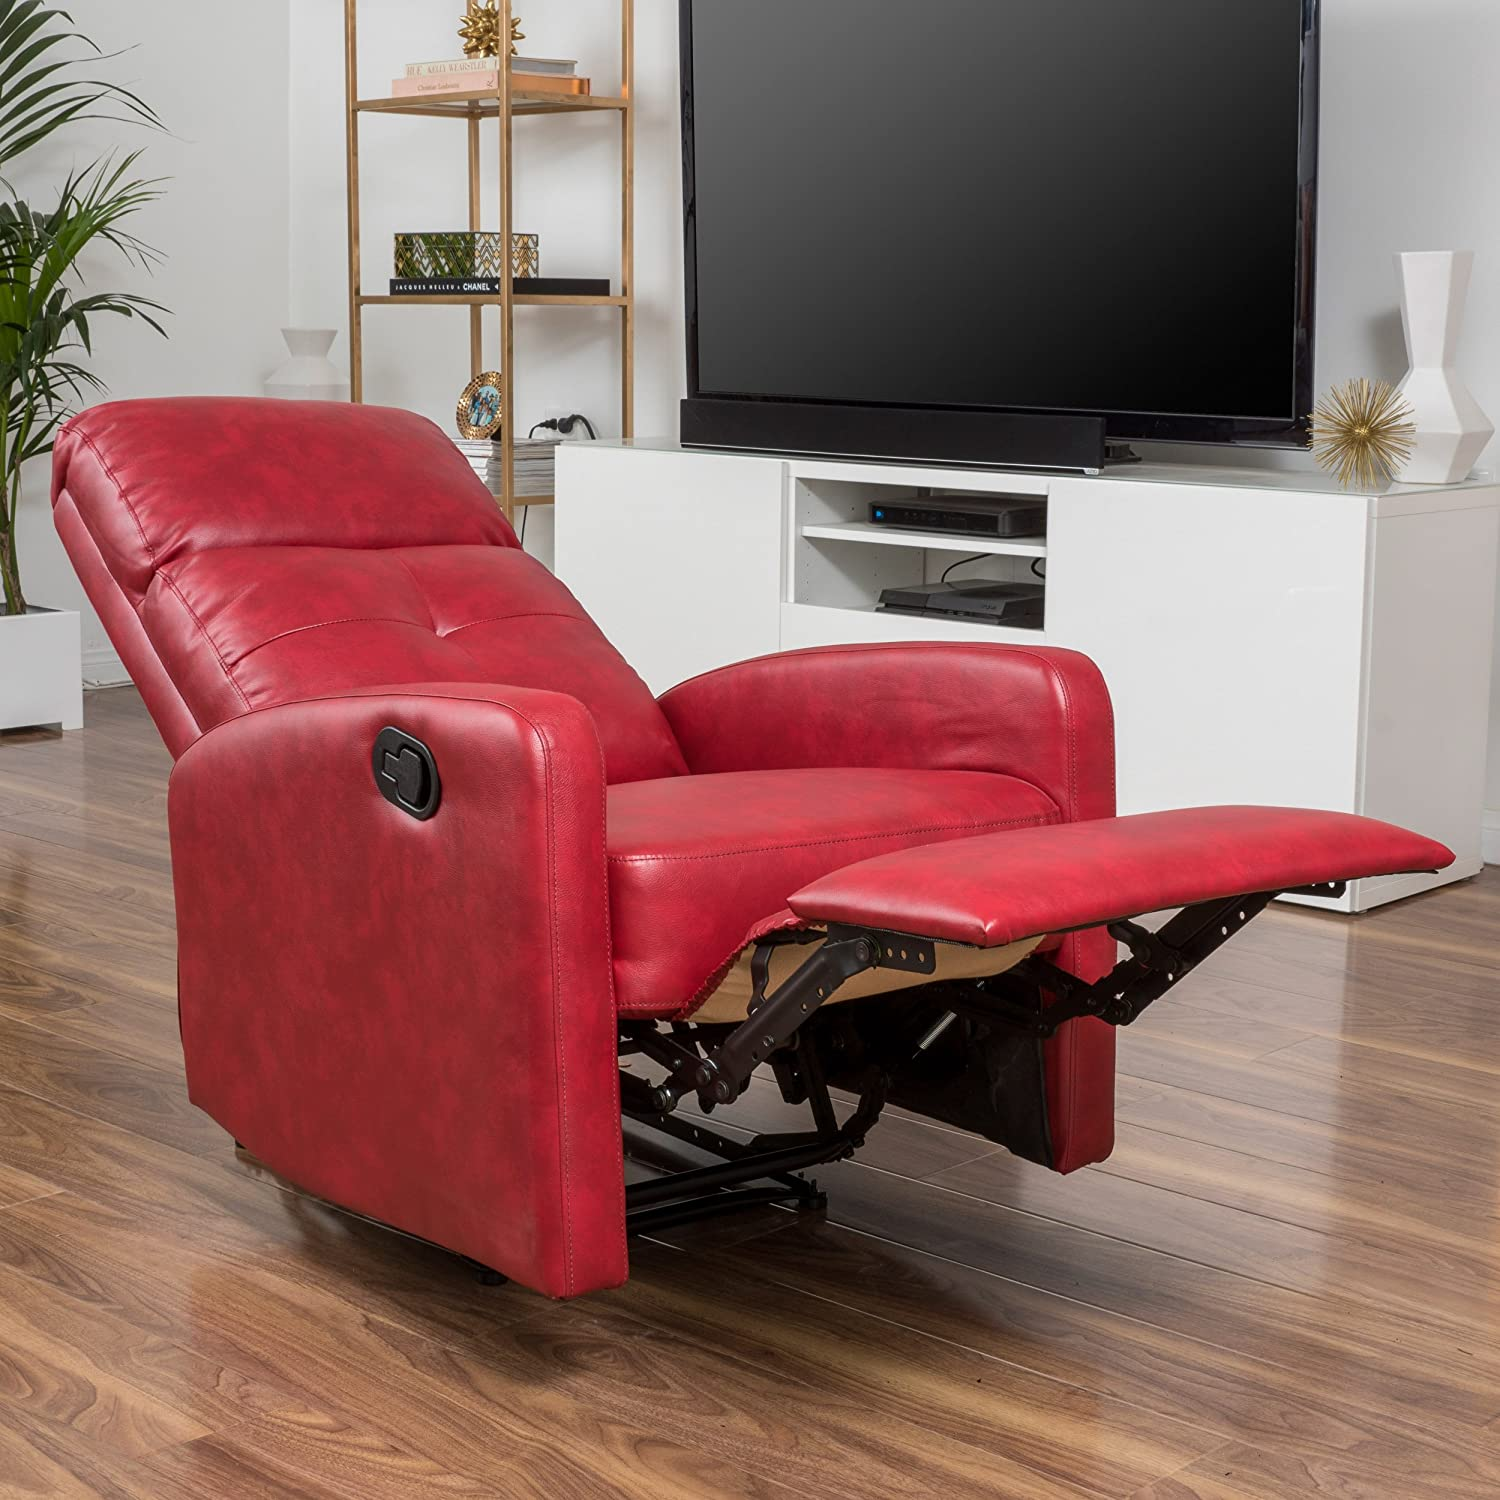 & Amazon.com: Teyana Red Leather Recliner Club Chair: Kitchen u0026 Dining islam-shia.org